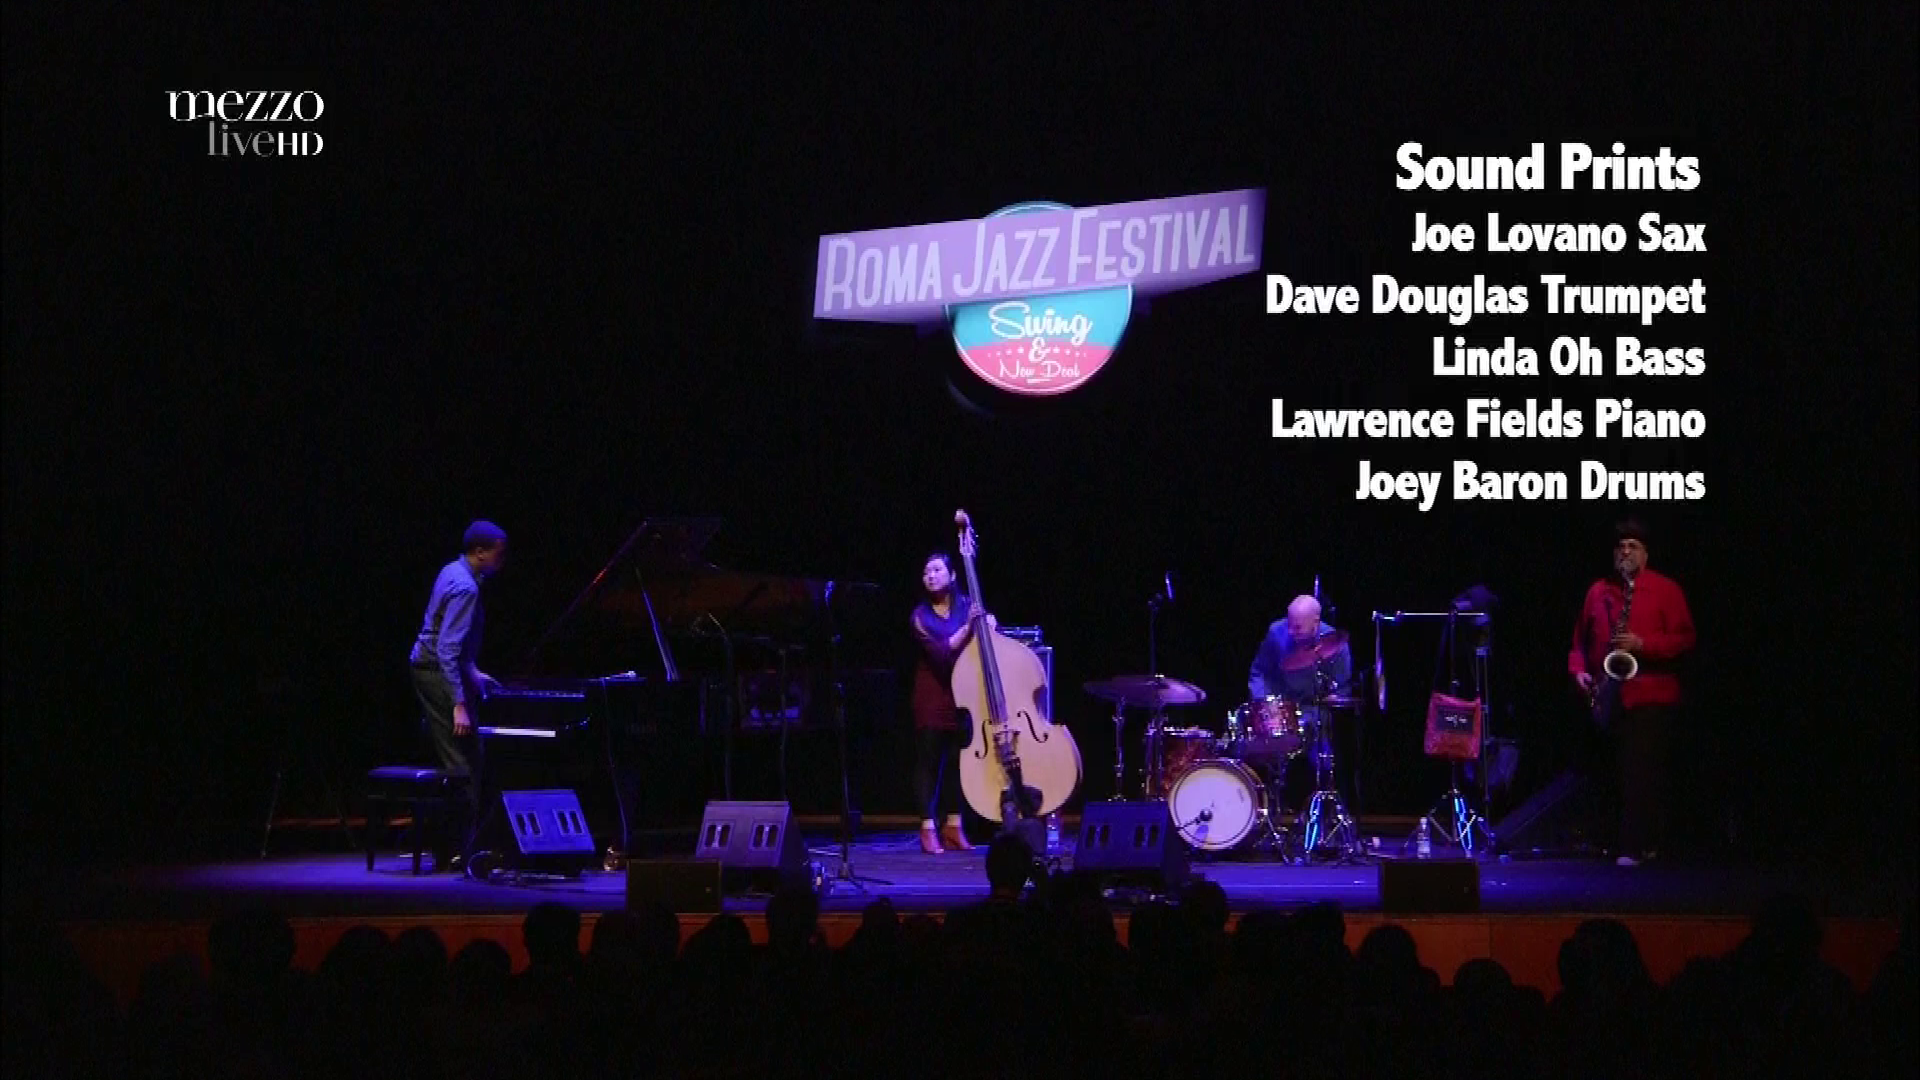 2015 Sound Prints feat. Dave Douglas & Joe Lovano - At Roma Jazz Festival [HDTV 1080i] 0